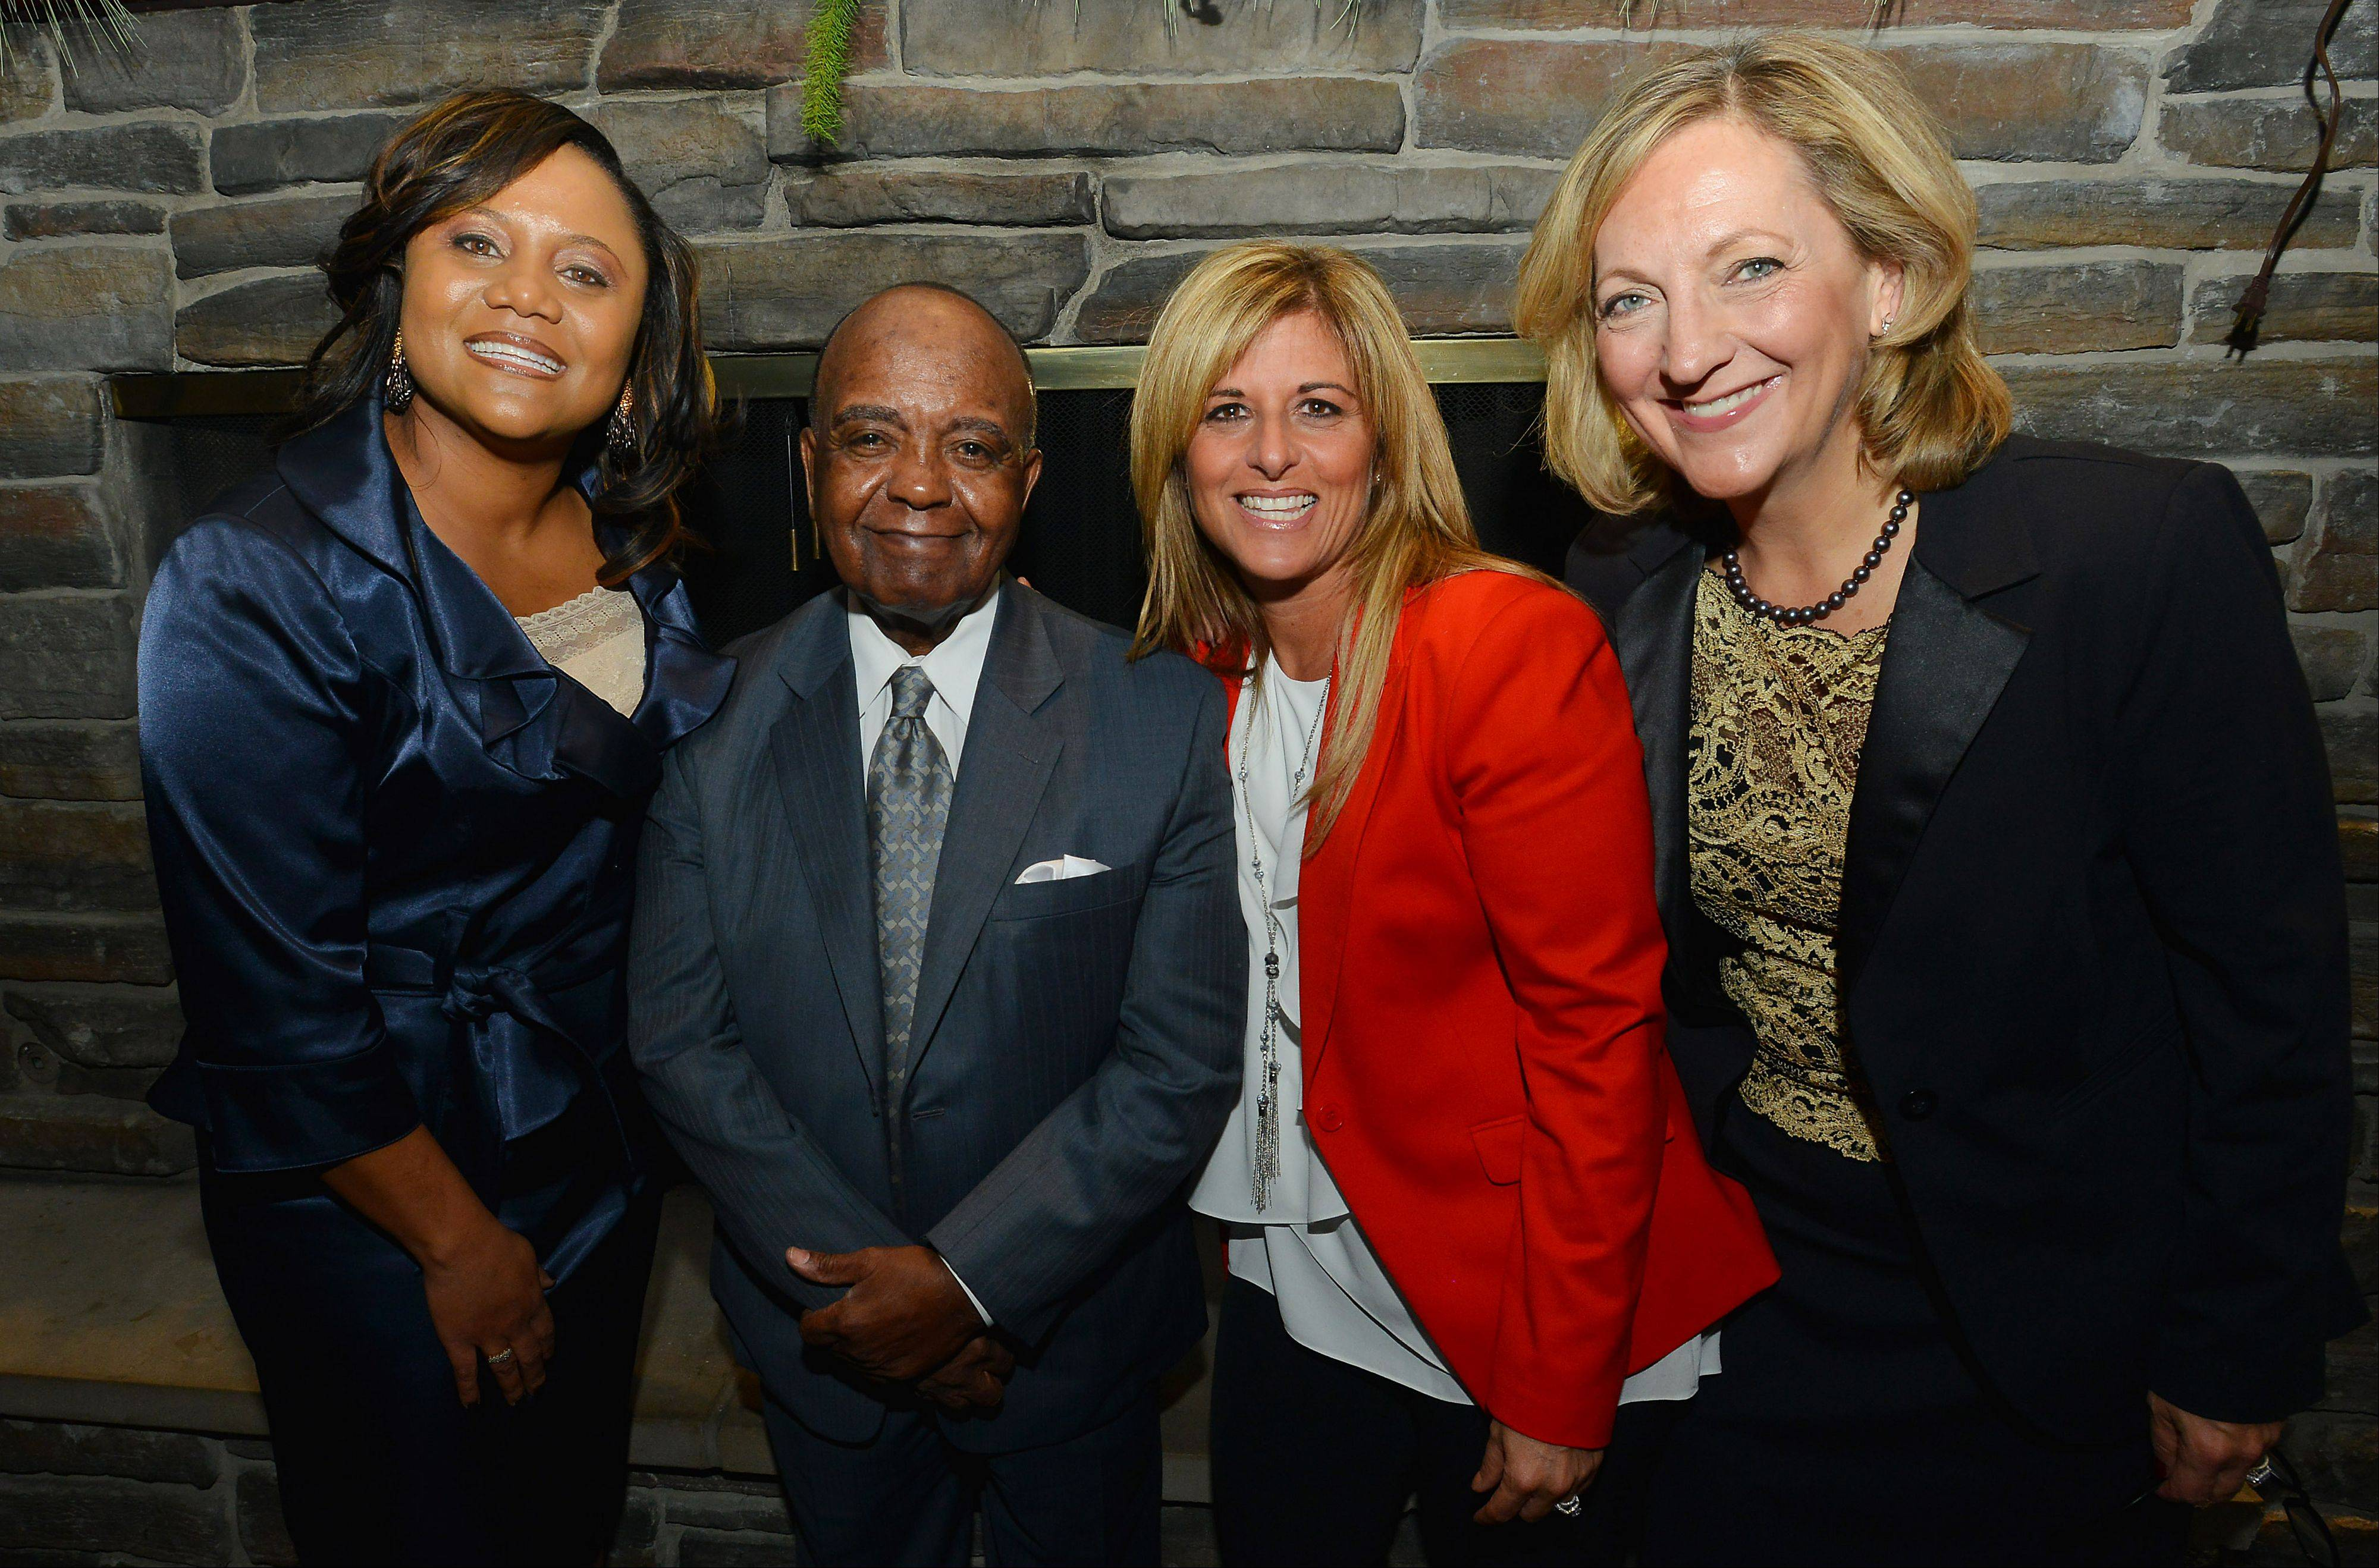 Three women were honored at the 12th annual Martin Luther King Jr. remembrance dinner in Hoffman Estates. Pictured with the Rev. Clyde Brooks, president of the Illinois Commission on Diversity and Human Relations, are, from left, keynote speaker Toni Carter of Motorola Solutions, Sherry Noland-Schultz of Sears Holdings Co. and attorney Kay Hoogland.